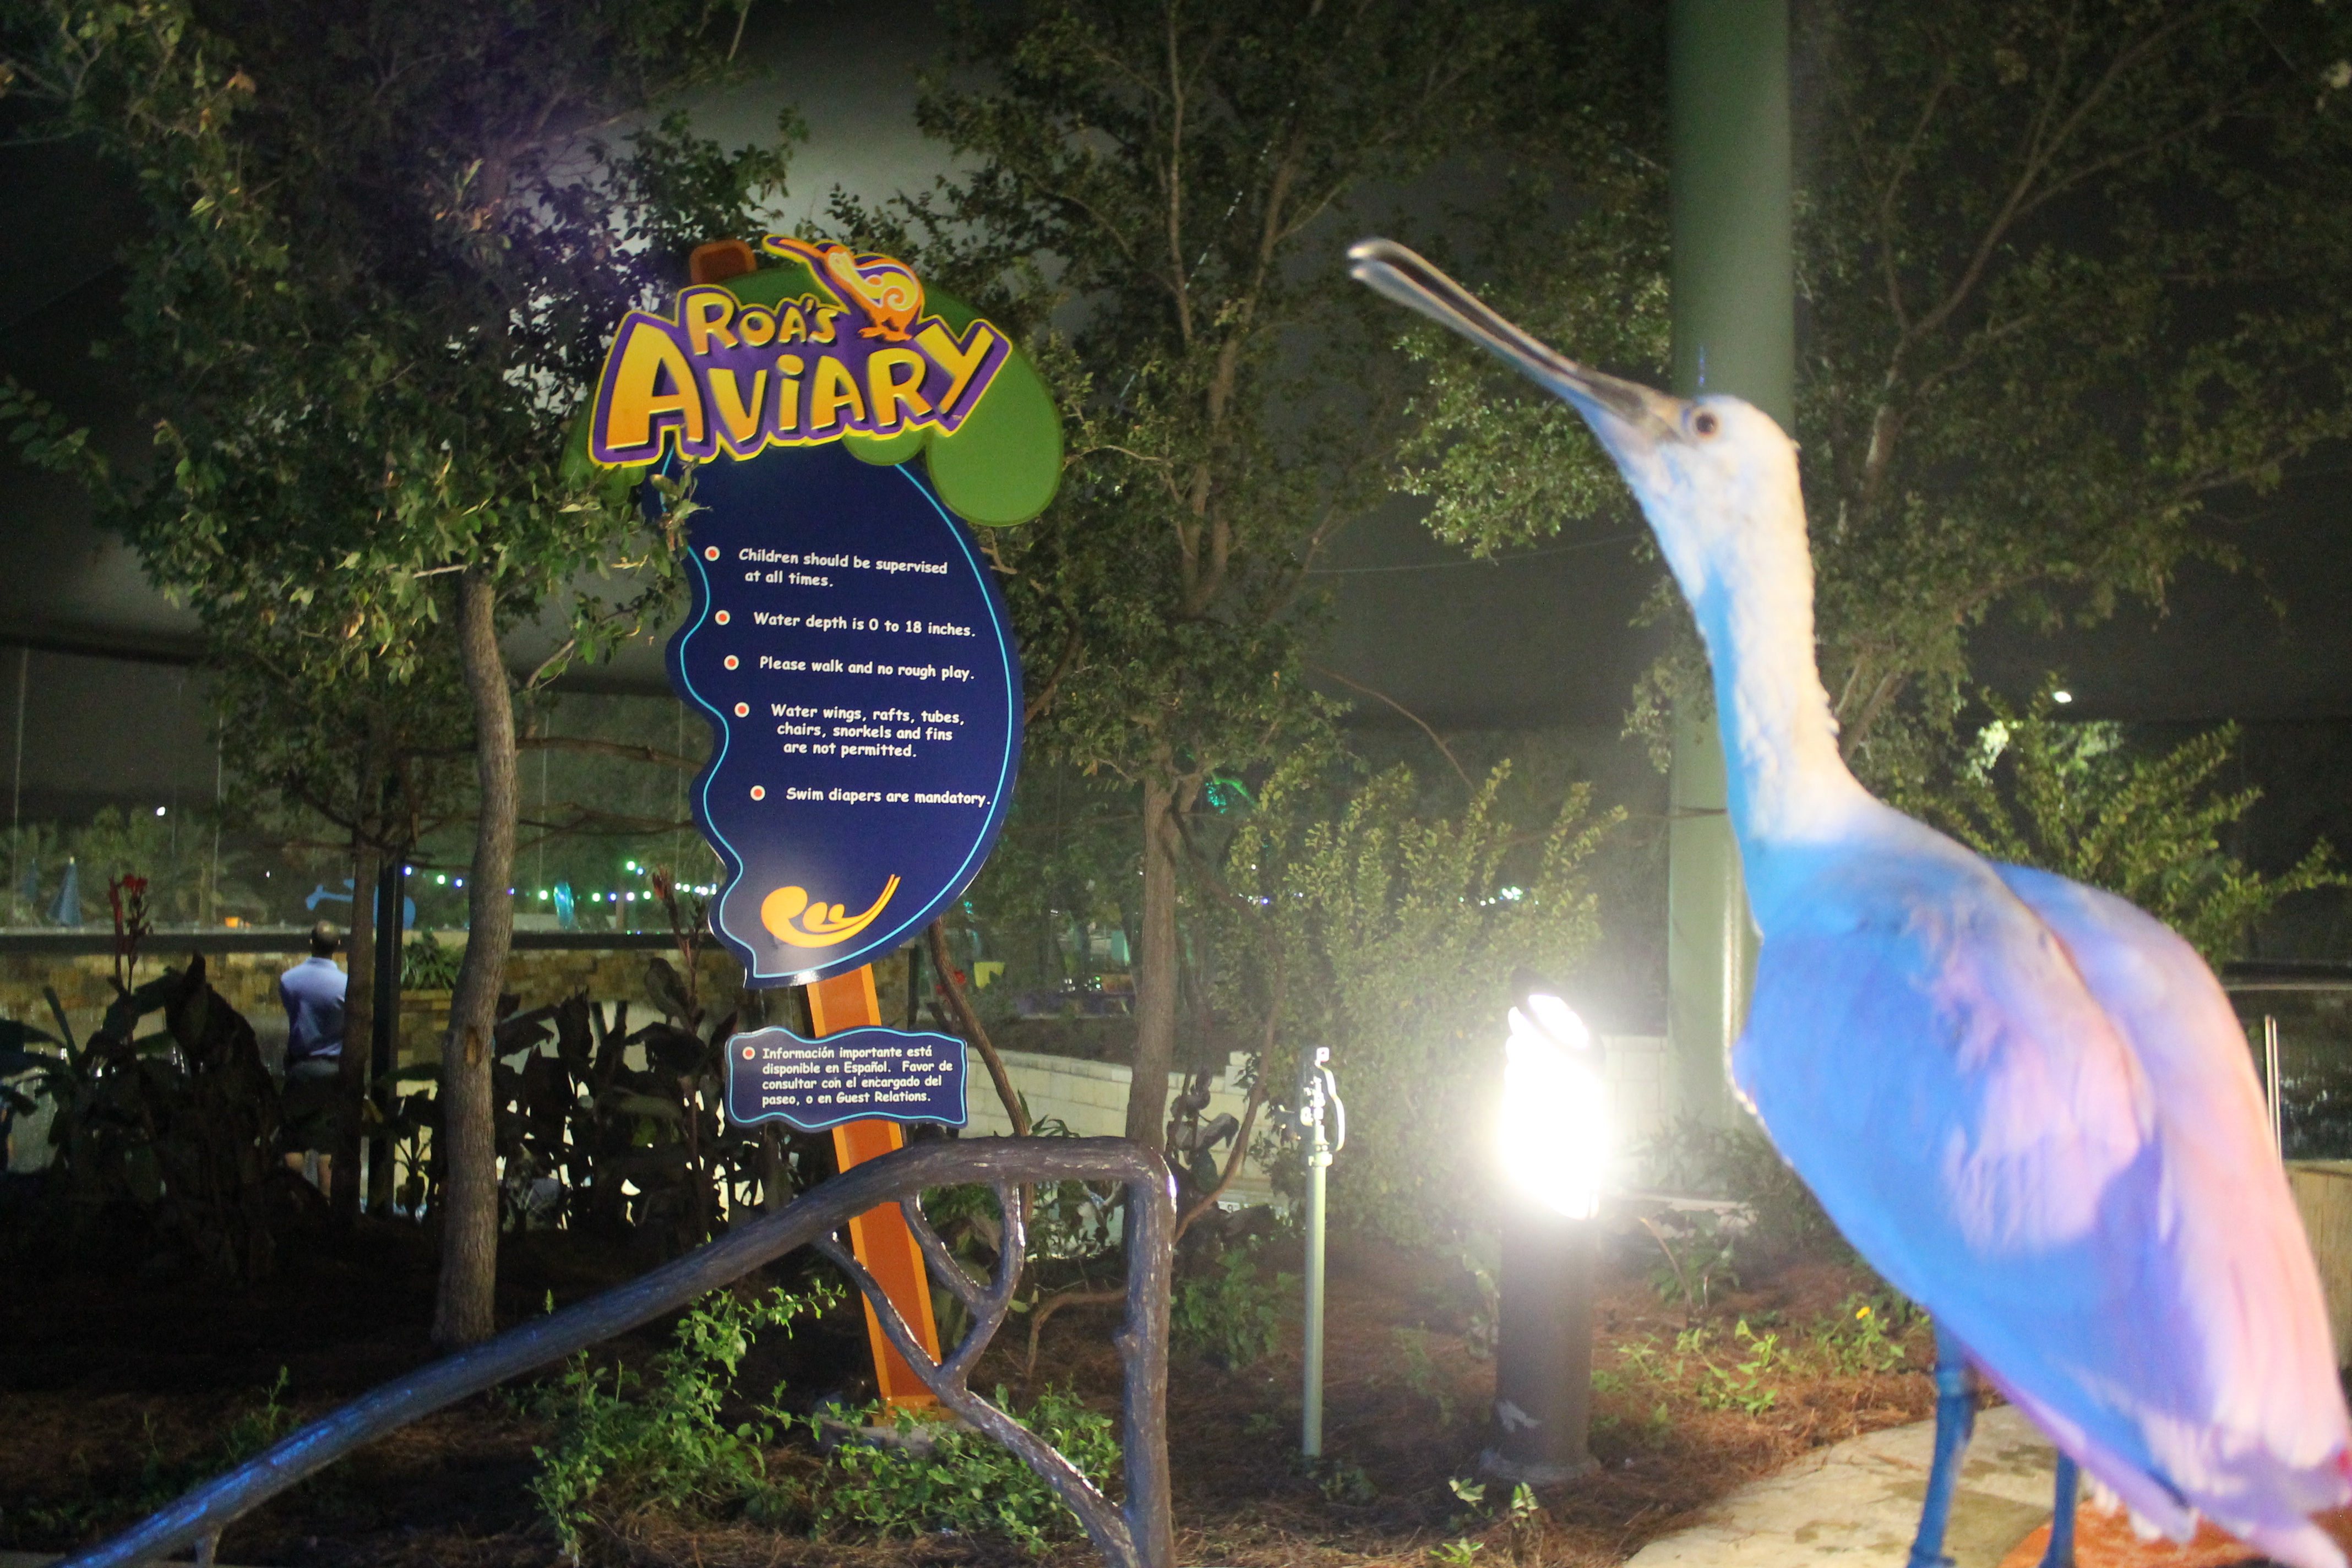 SeaWorld Podcast Ep 25 - The SeaWorld San Antonio Review - Roa's Aviary and Superfan event